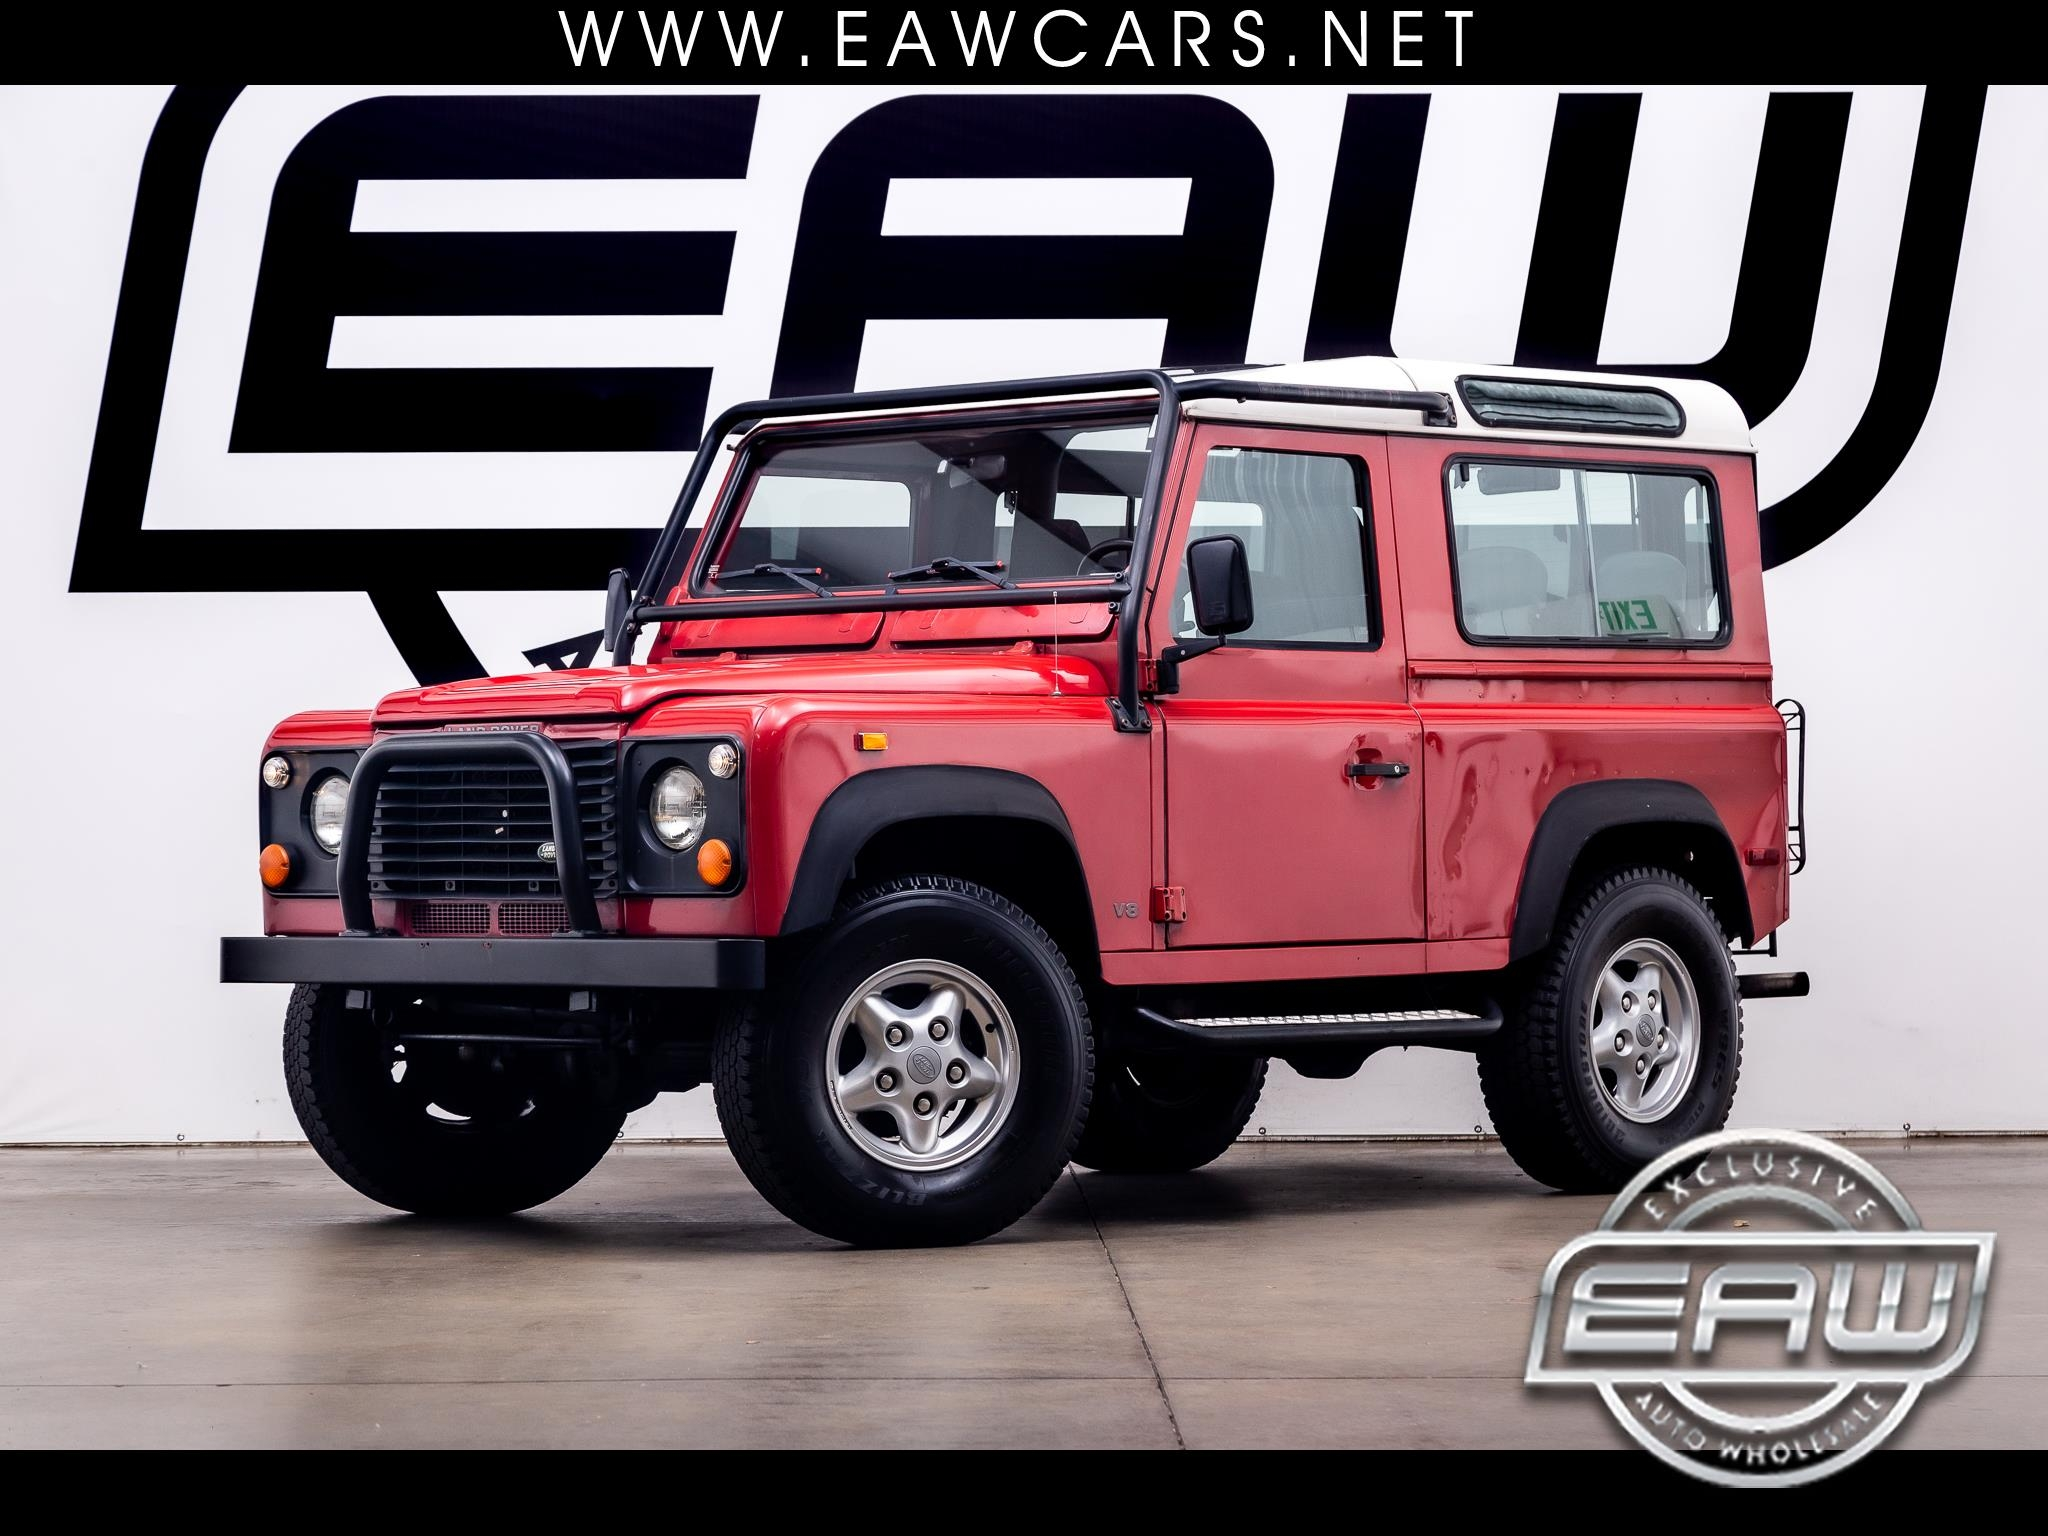 Land Rover Defender 90 2dr Station Wagon Hard-Top 1997